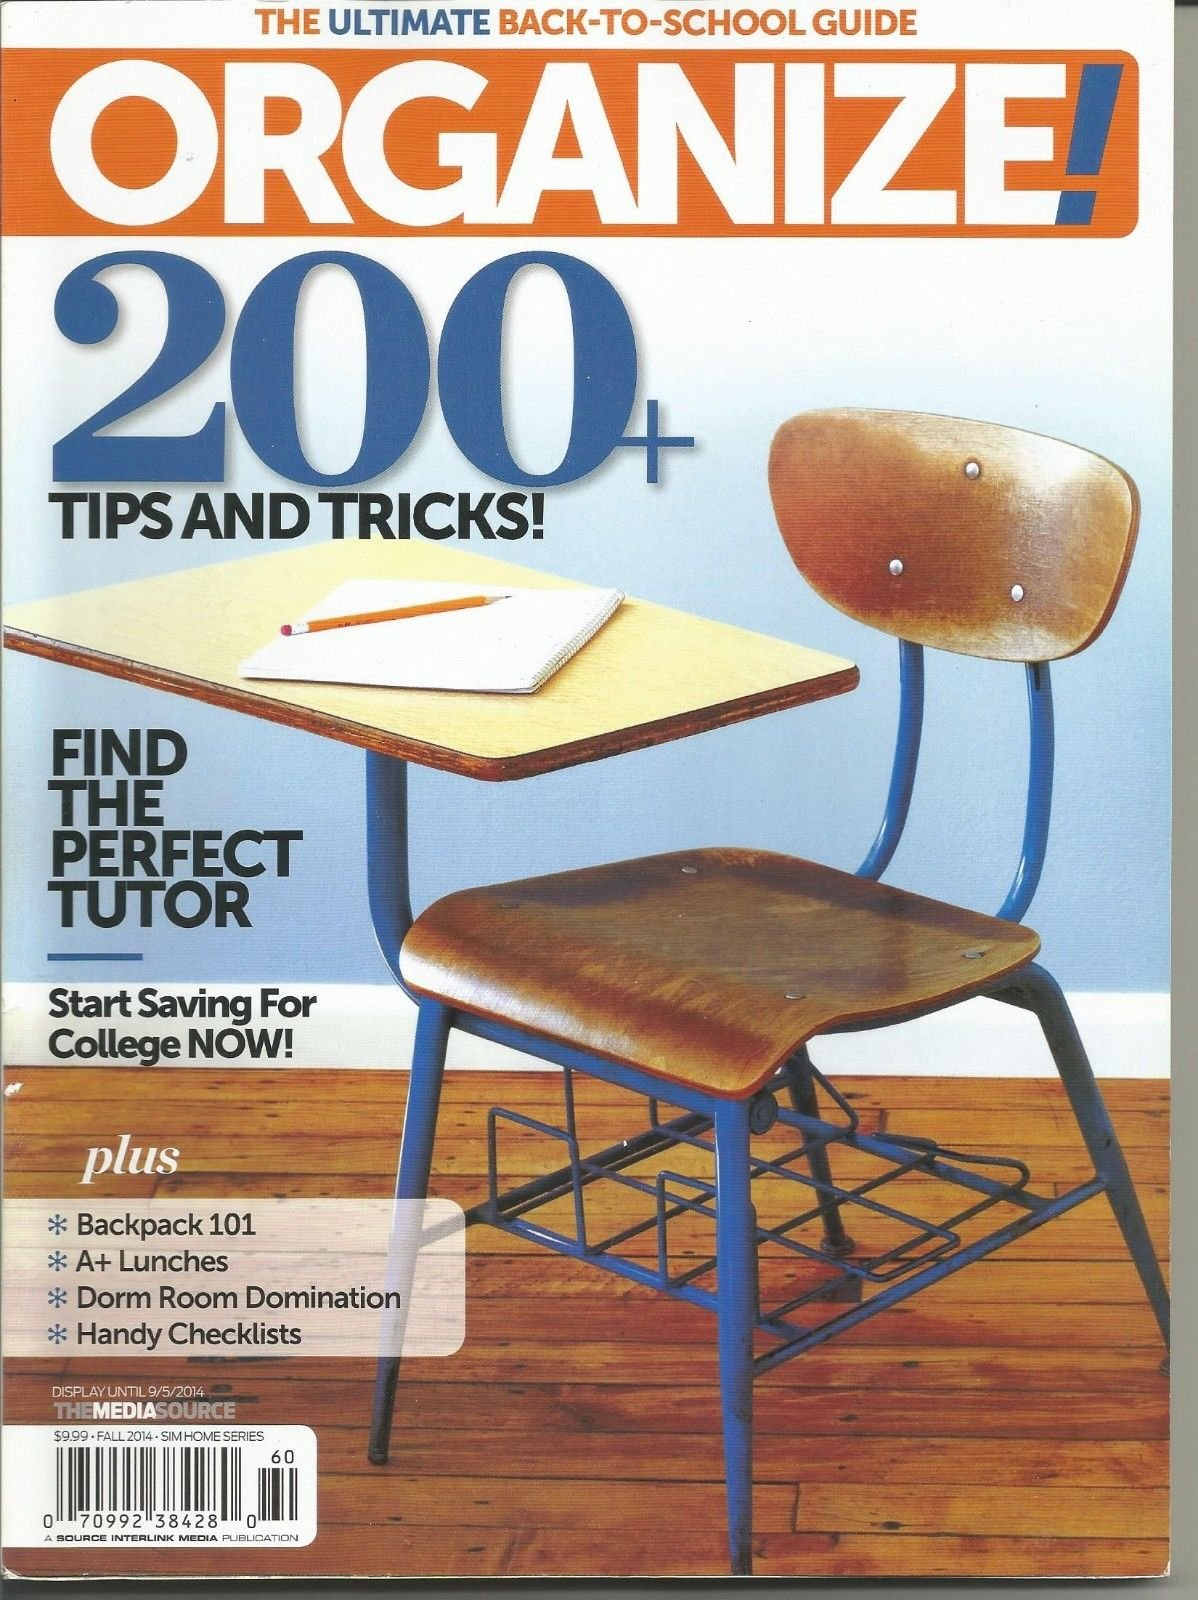 ORGANIZE! FALL 2014, THE ULTIMATE BACK-TO-SCHOOL GUIDE